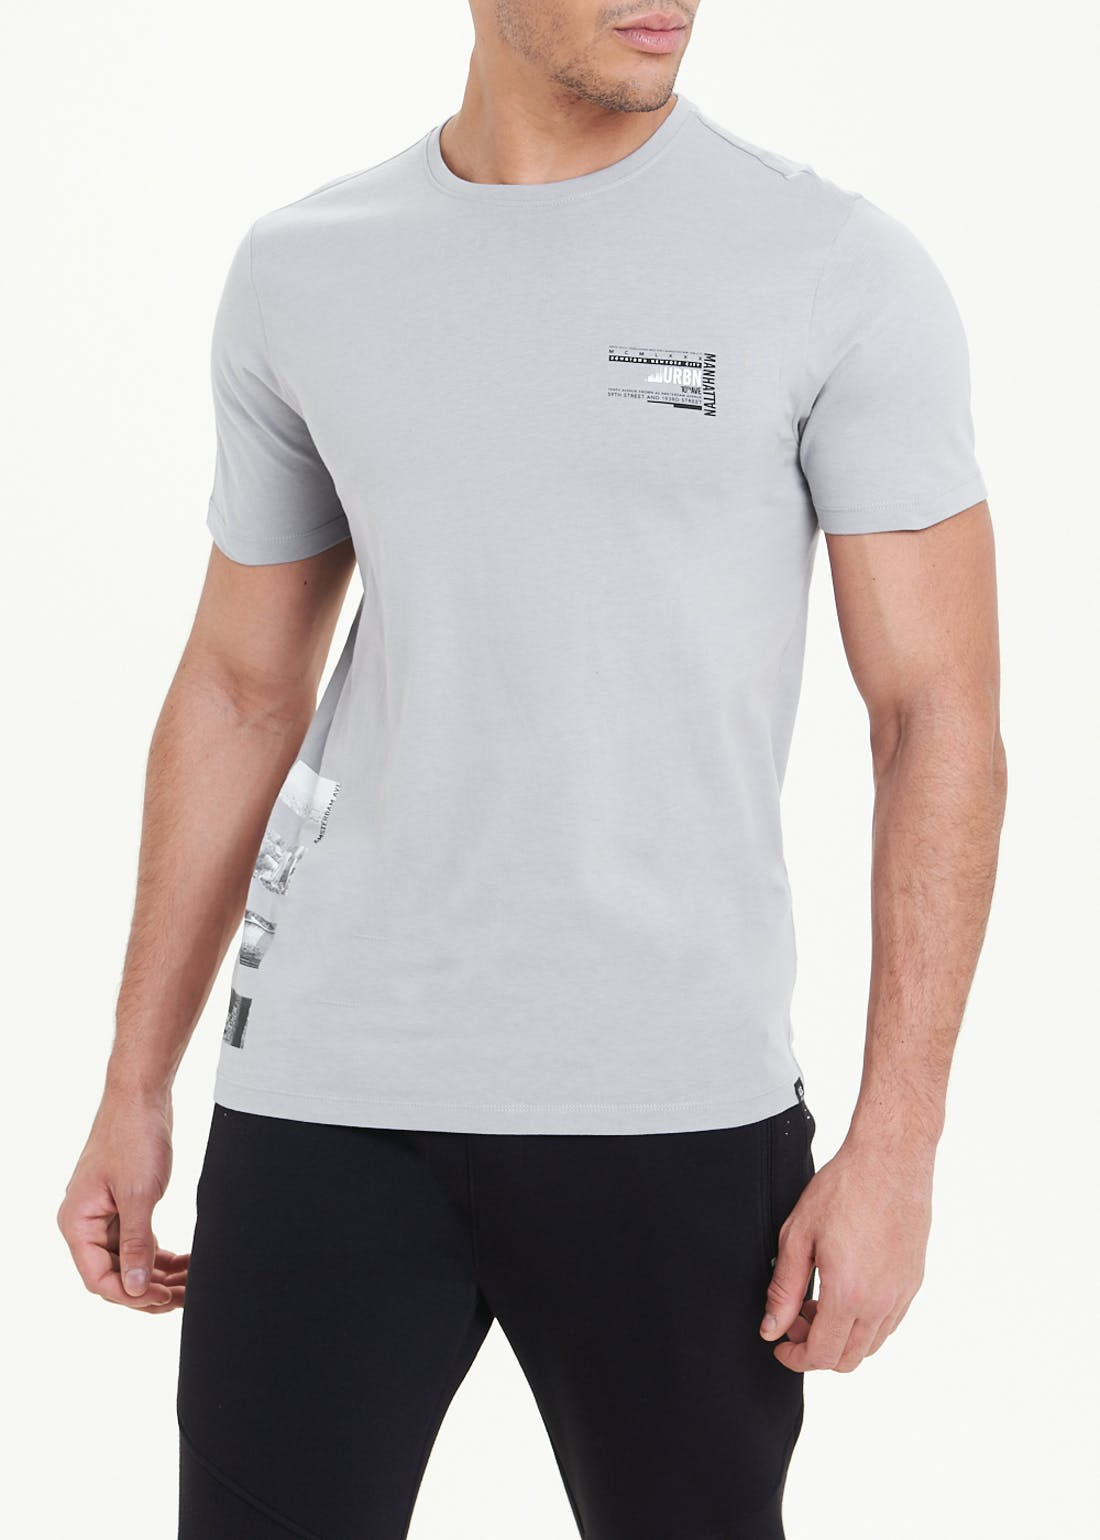 US Athletic Manhattan T-Shirt